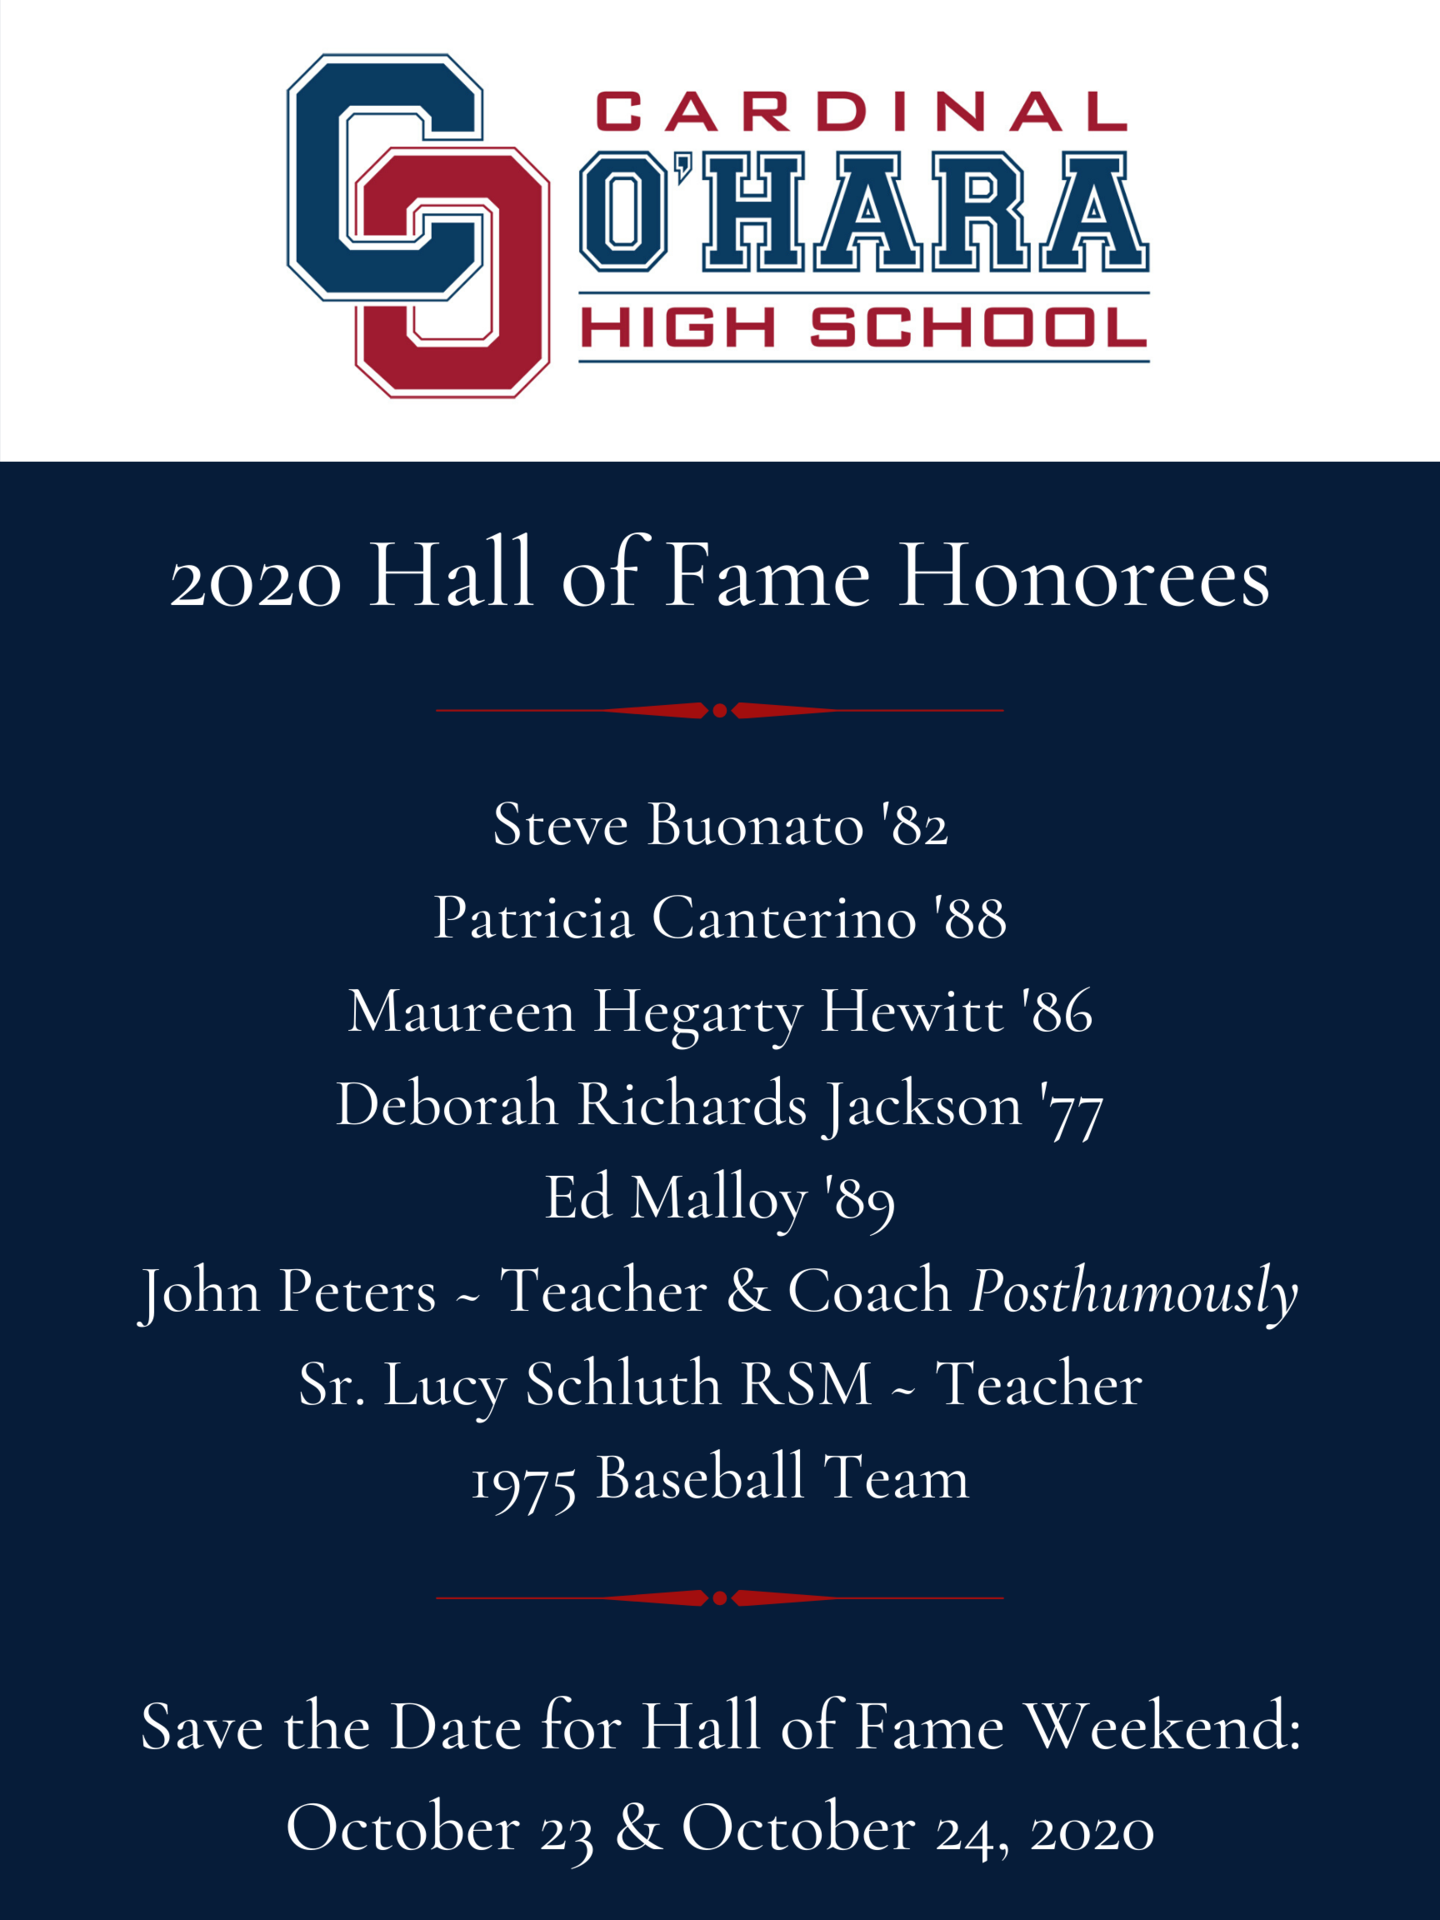 COHS 2020 Hall of Fame